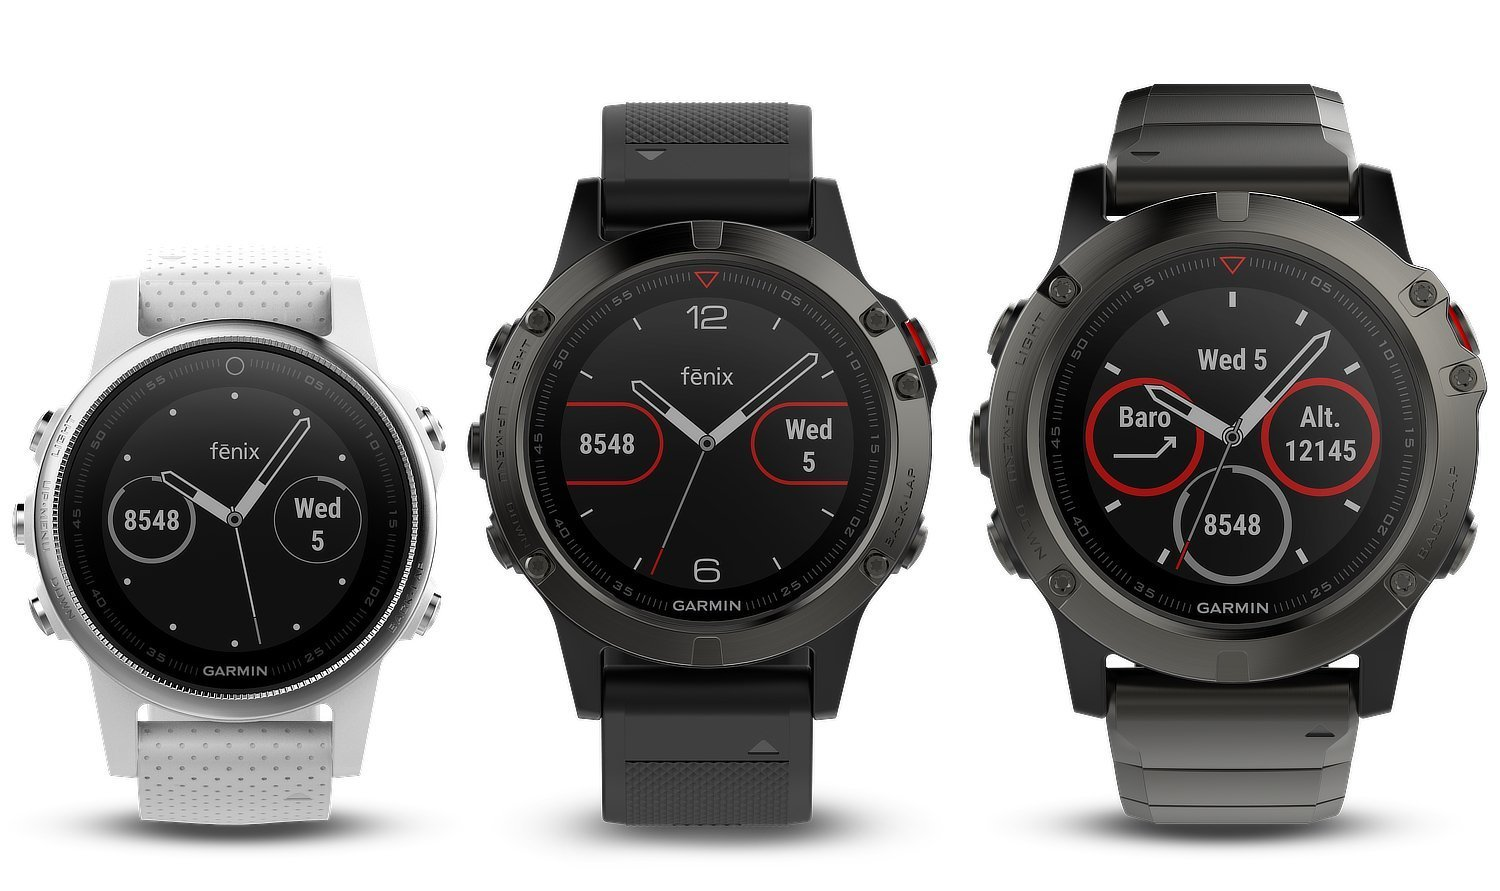 garmin fenix 5 in drei versionen vorgestellt gps radler. Black Bedroom Furniture Sets. Home Design Ideas